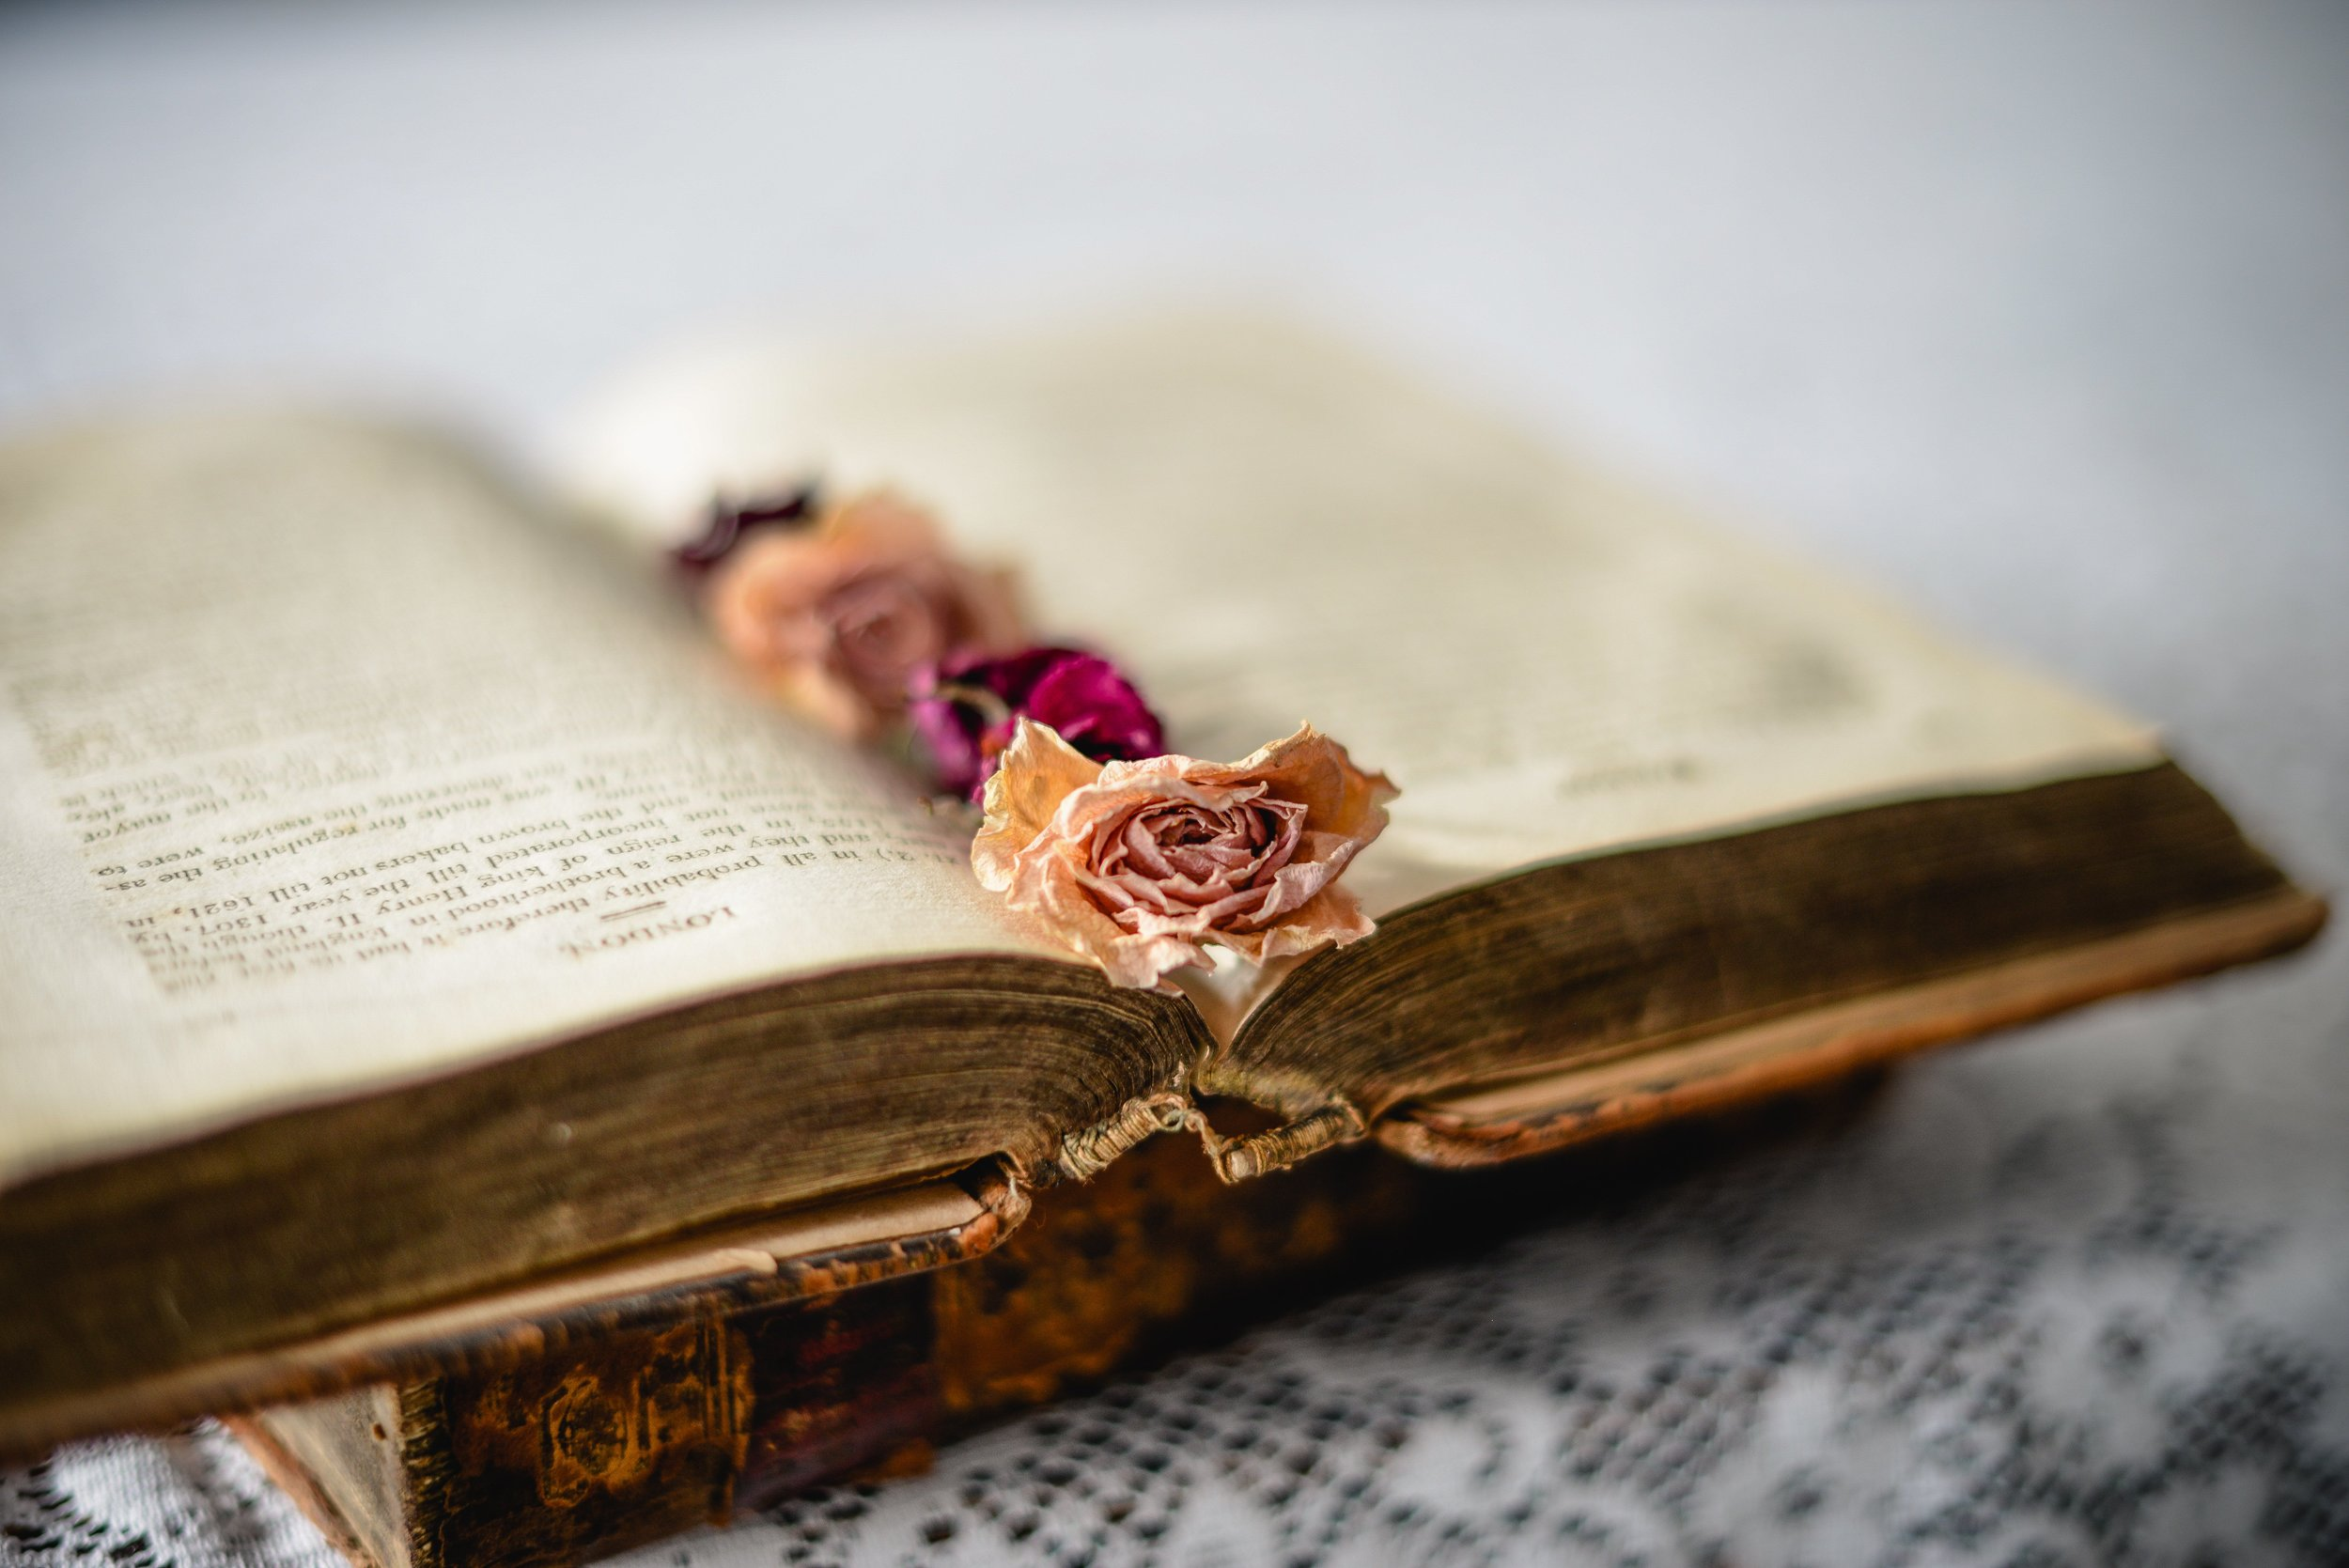 open book with dried flowers